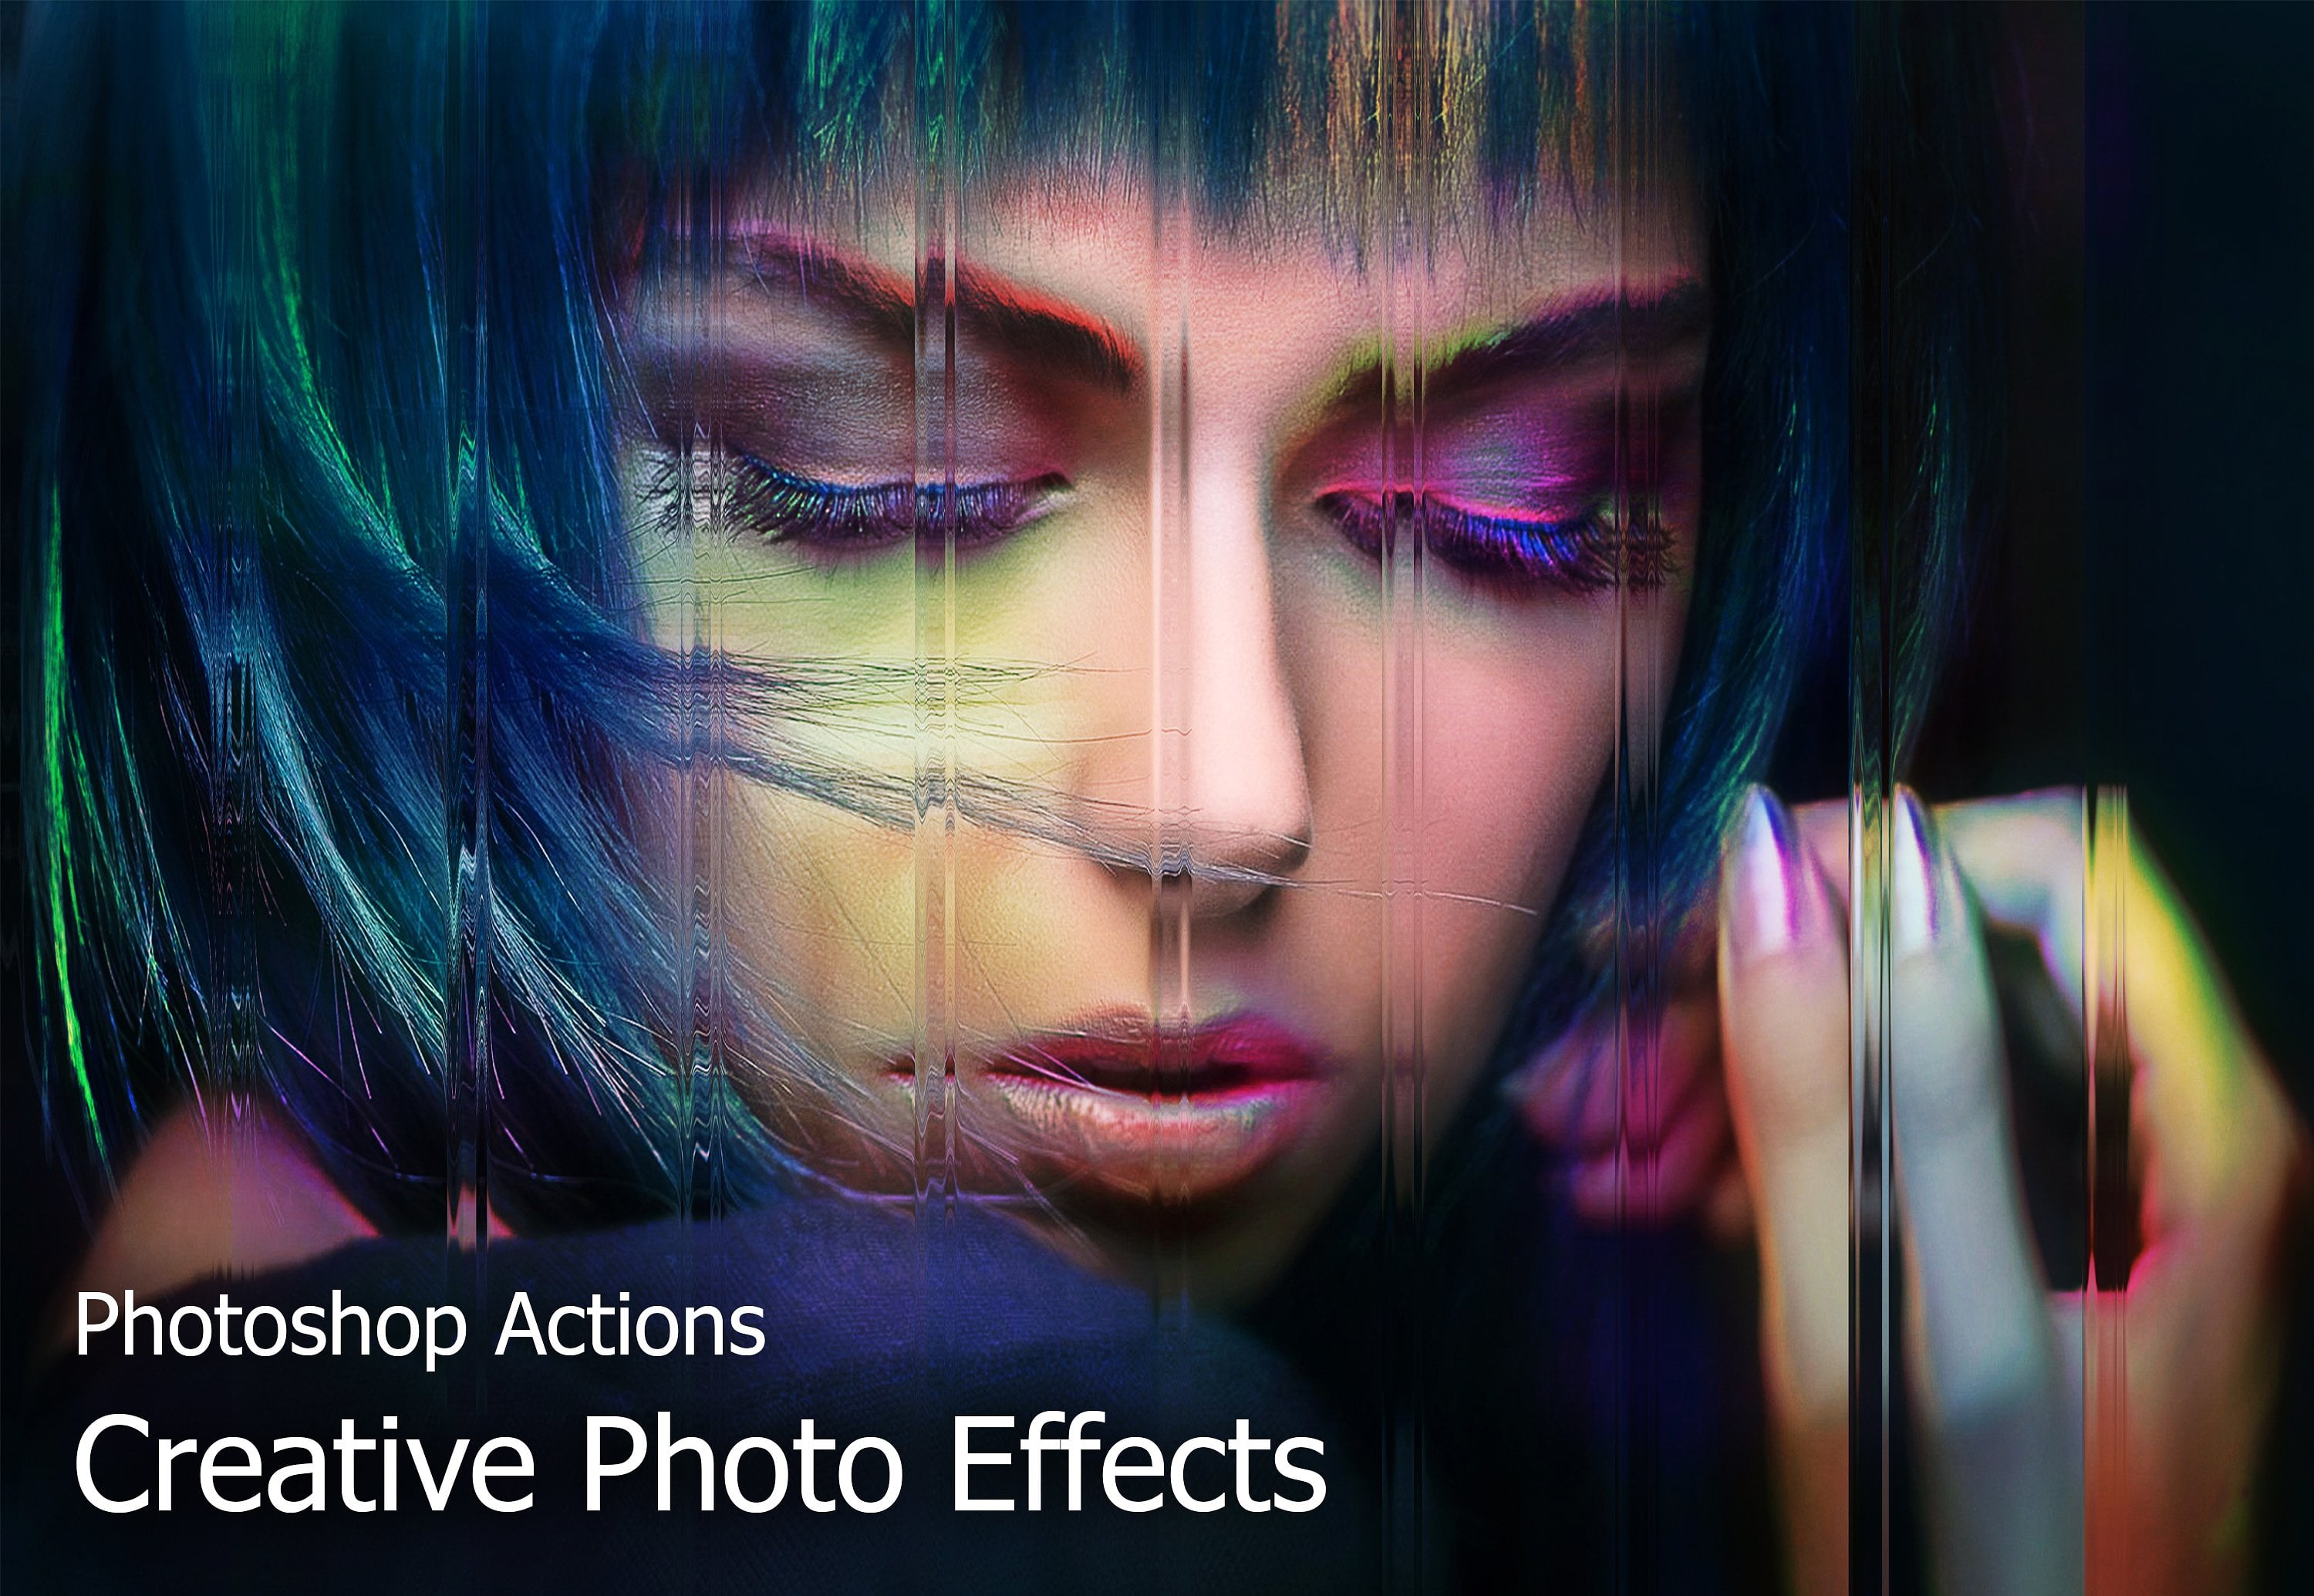 Creative Photo Effects